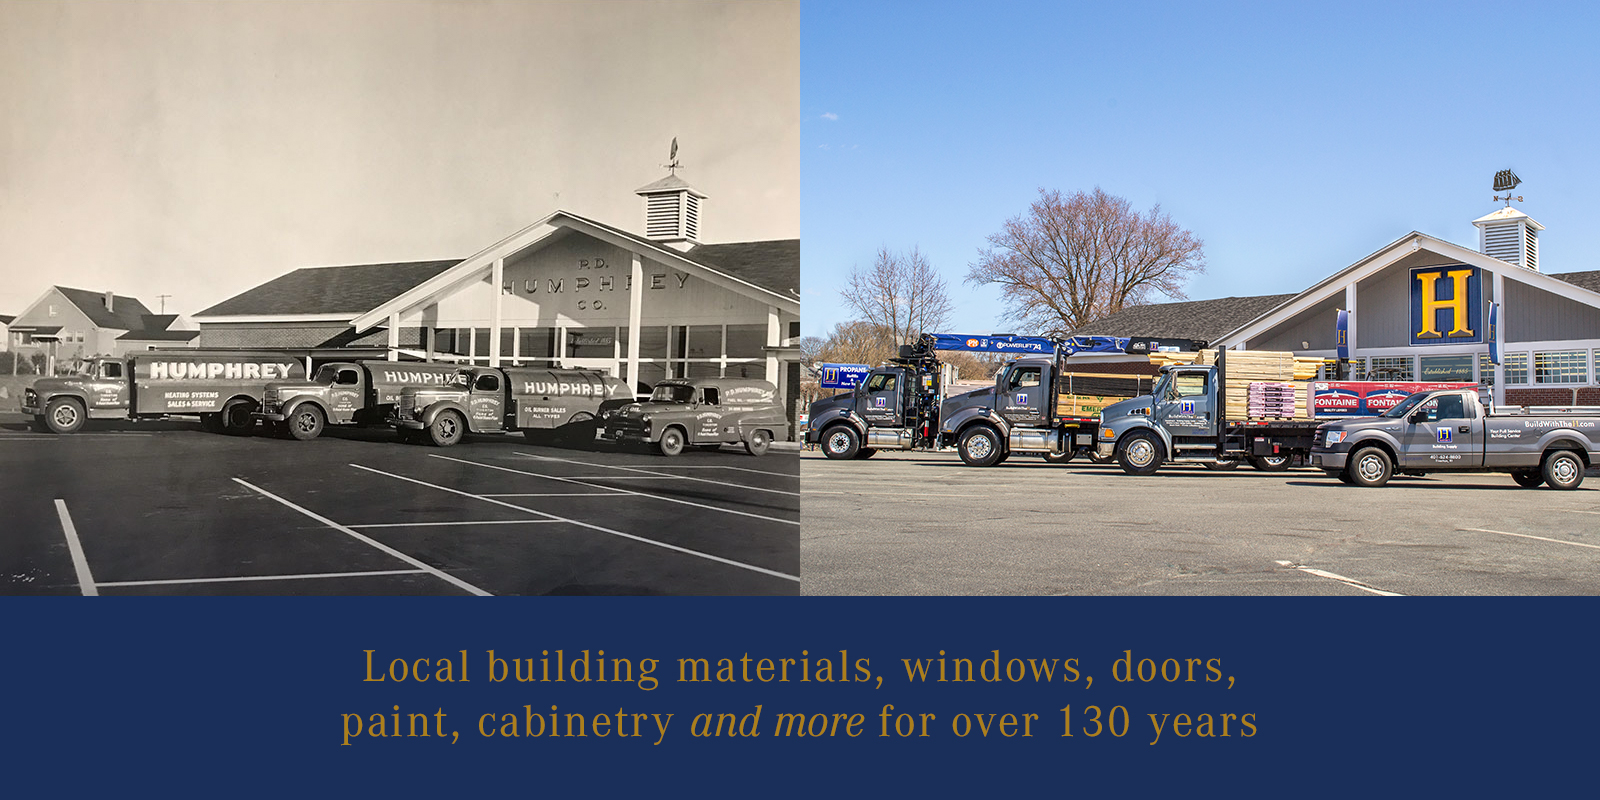 Local building materials, windows, doors, paint, cabinetry and more for over 130 years